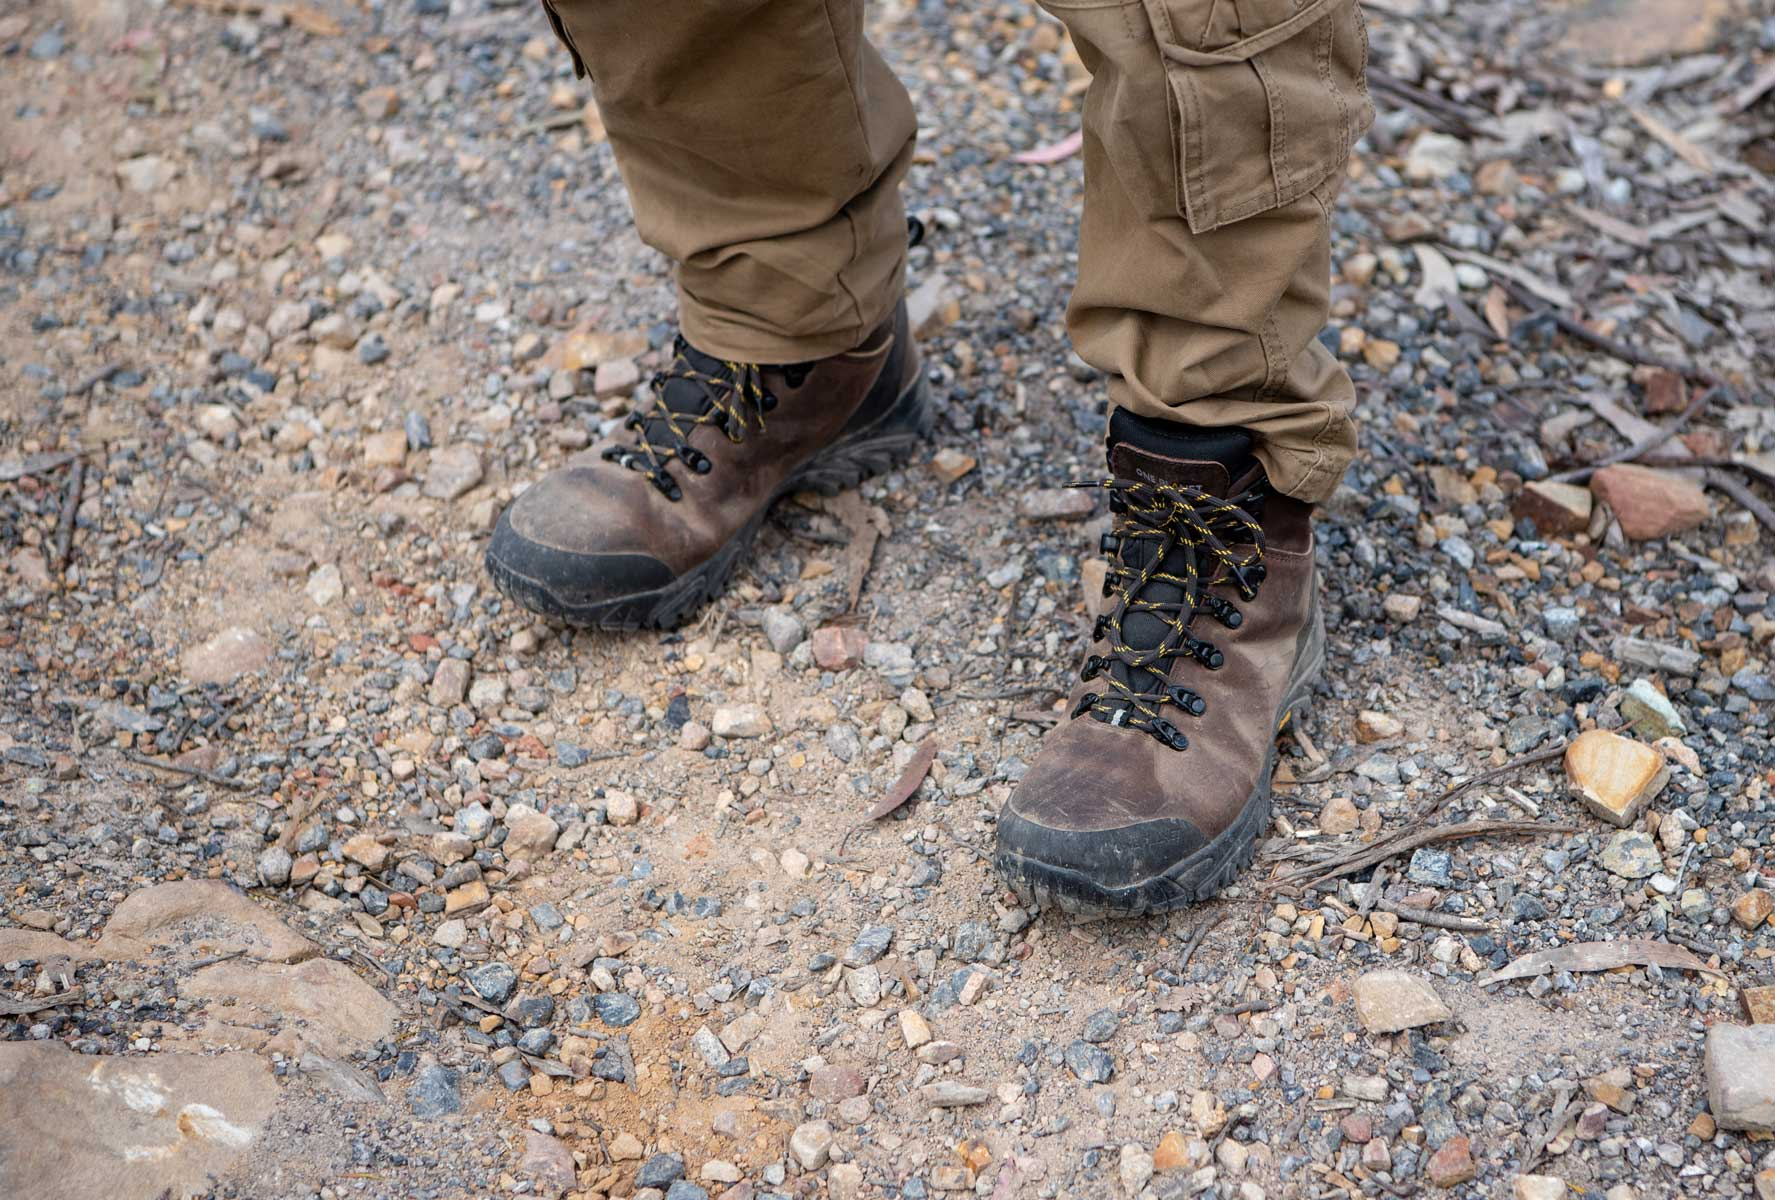 Man wearing hiking boots with solid toe boxes